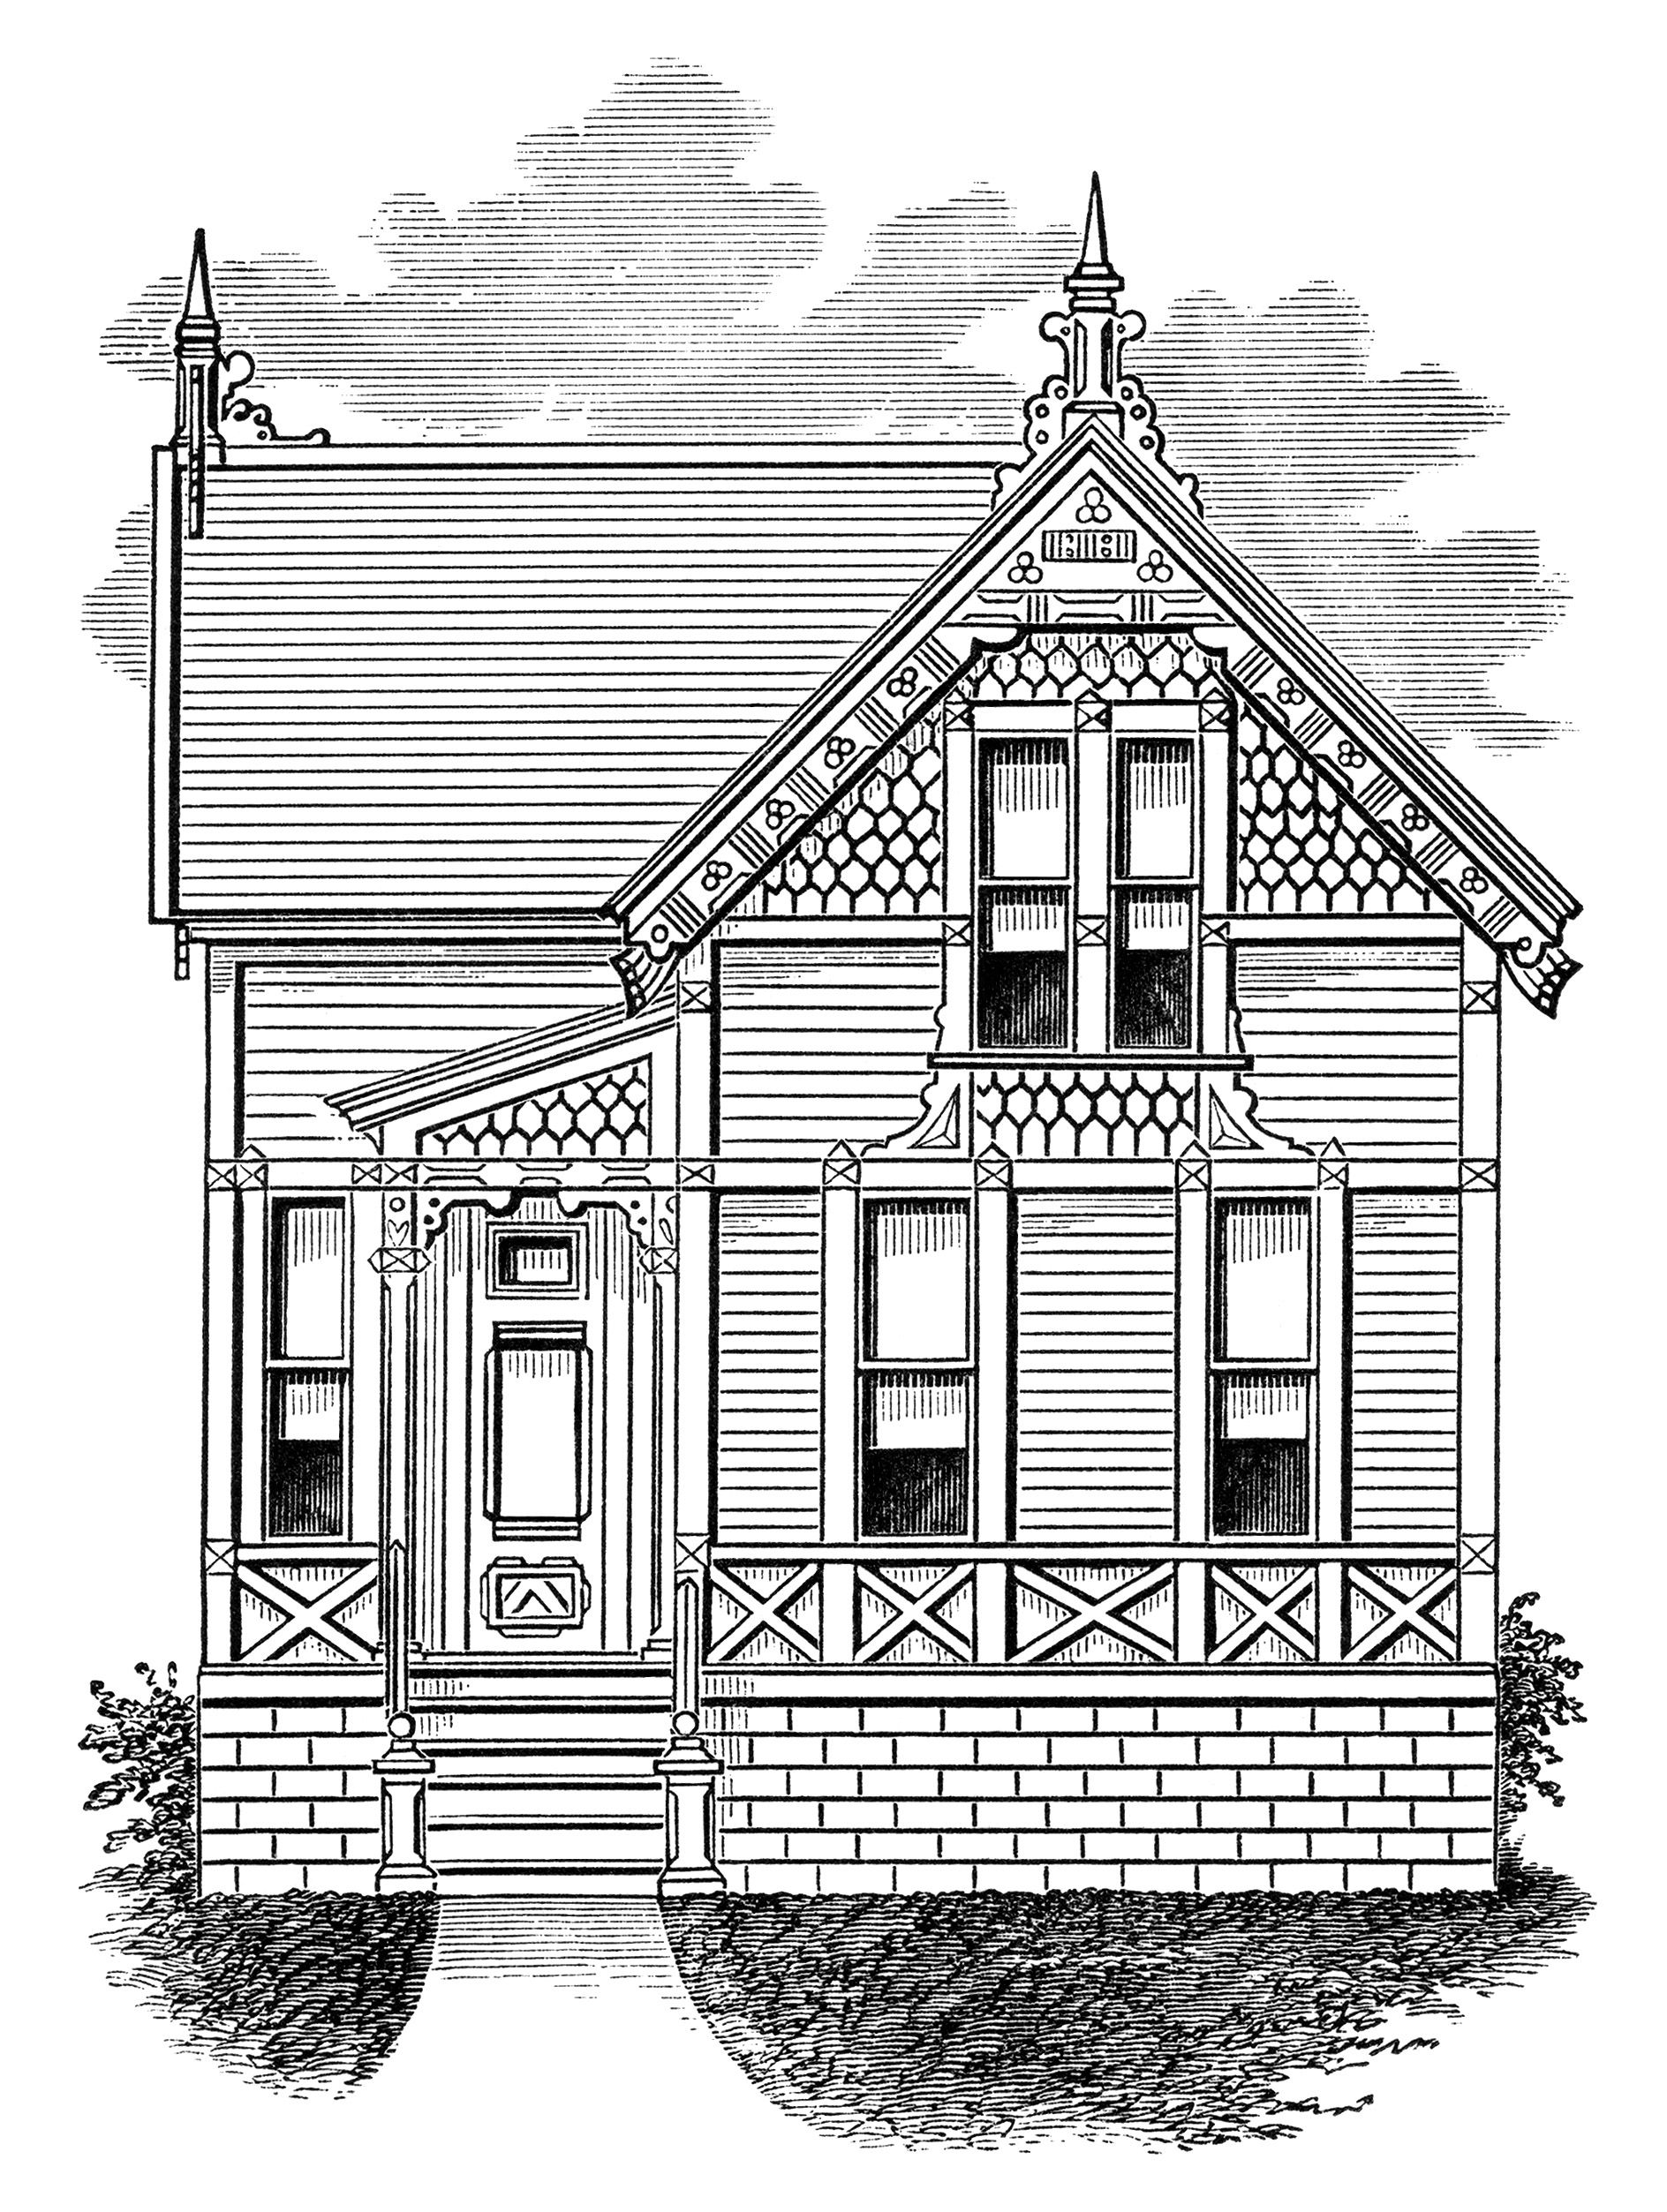 Small old house vintage. Farmhouse clipart victorian home